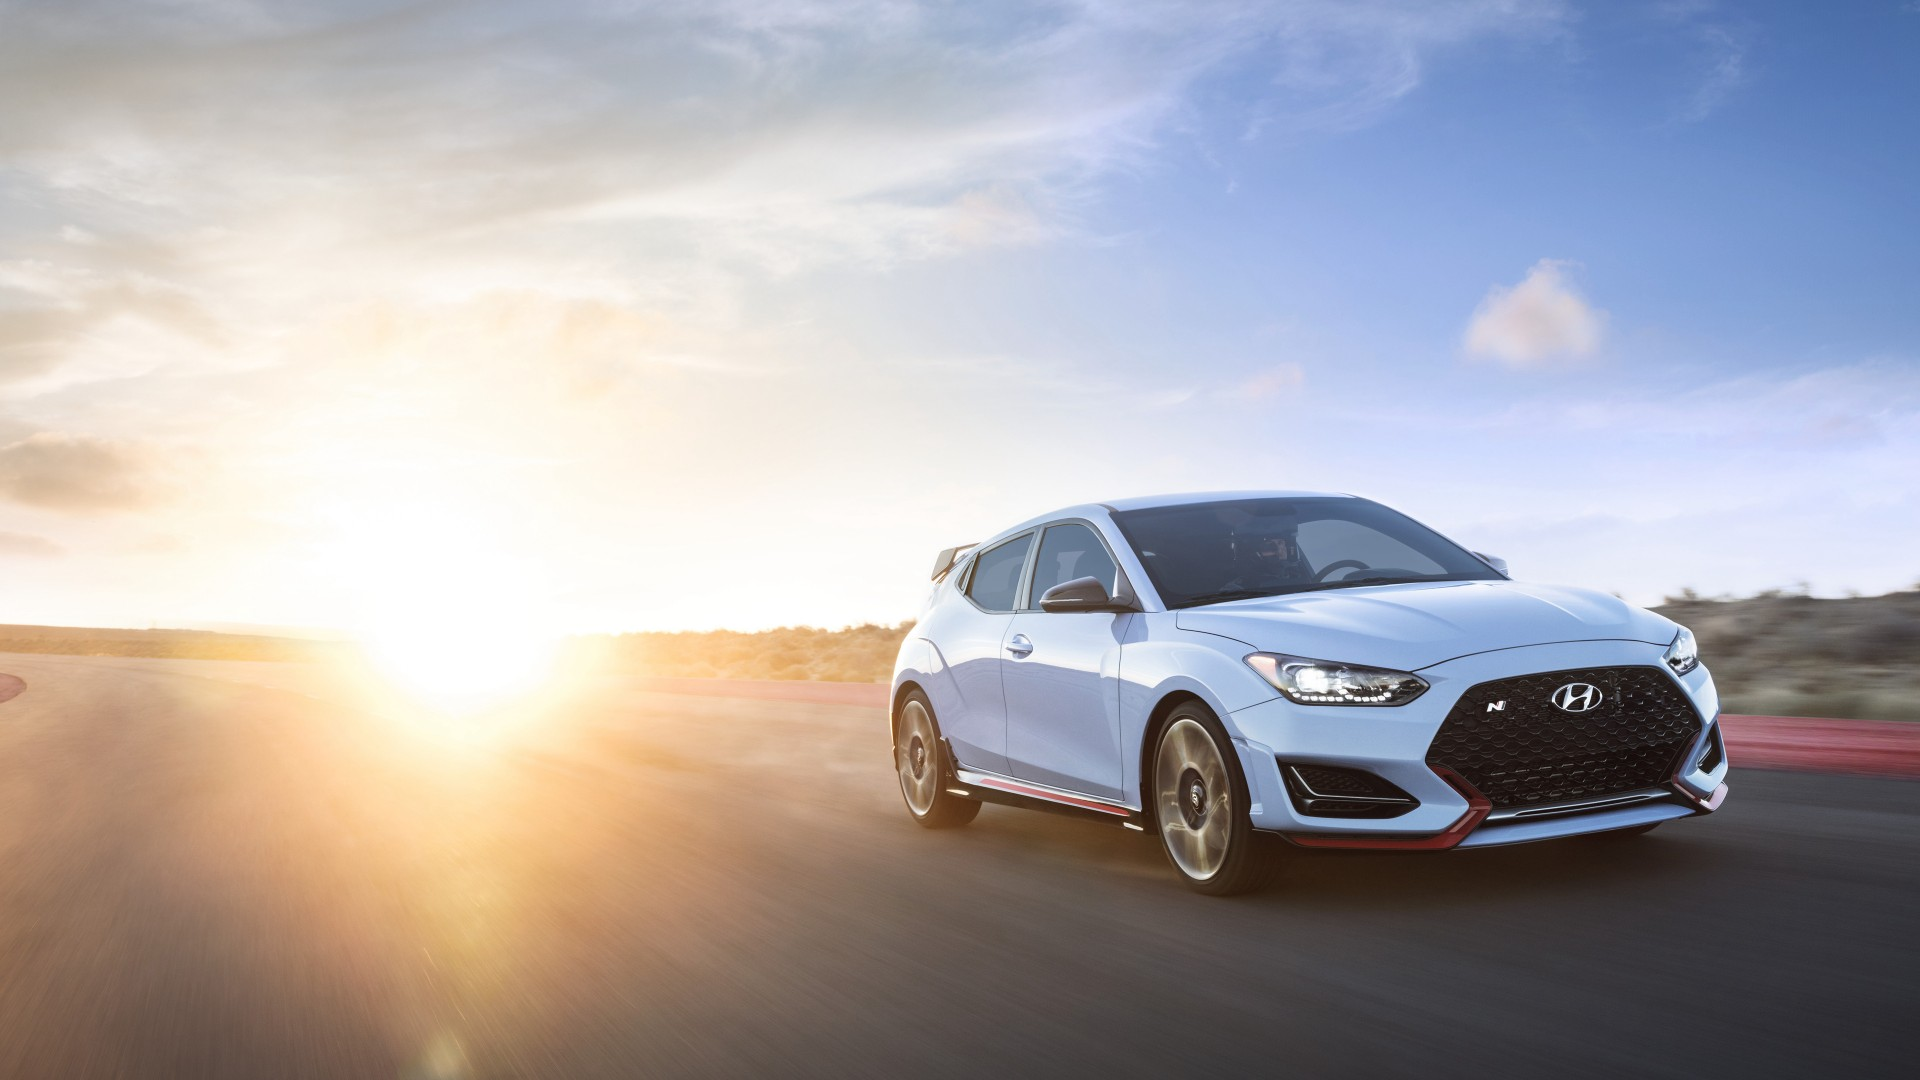 Learn more about the 2013 hyundai veloster. 2019 Hyundai Veloster N 2 4K Wallpaper   HD Car Wallpapers